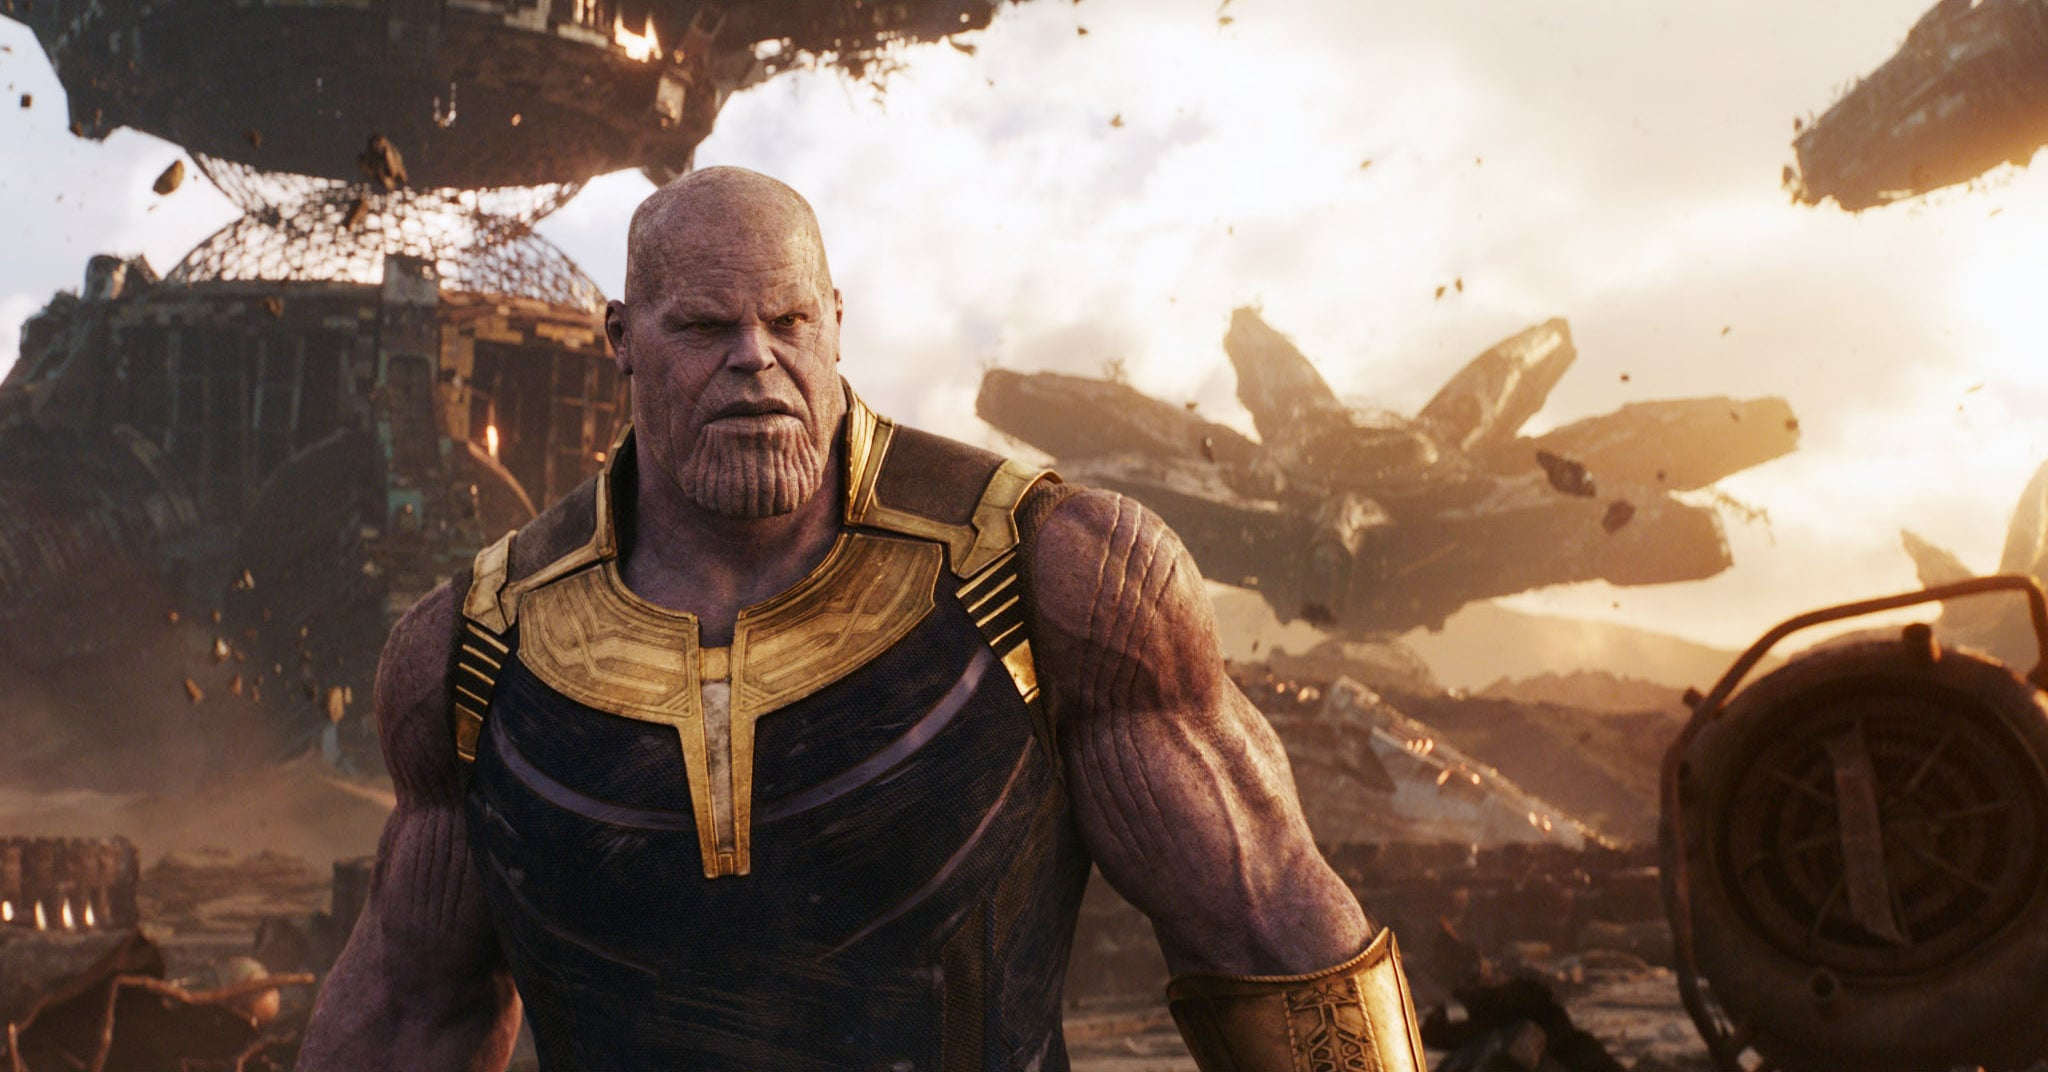 How the Spider-Man: Far From Home Trailer Alludes to Thanos's Defeat in Avengers: Endgame